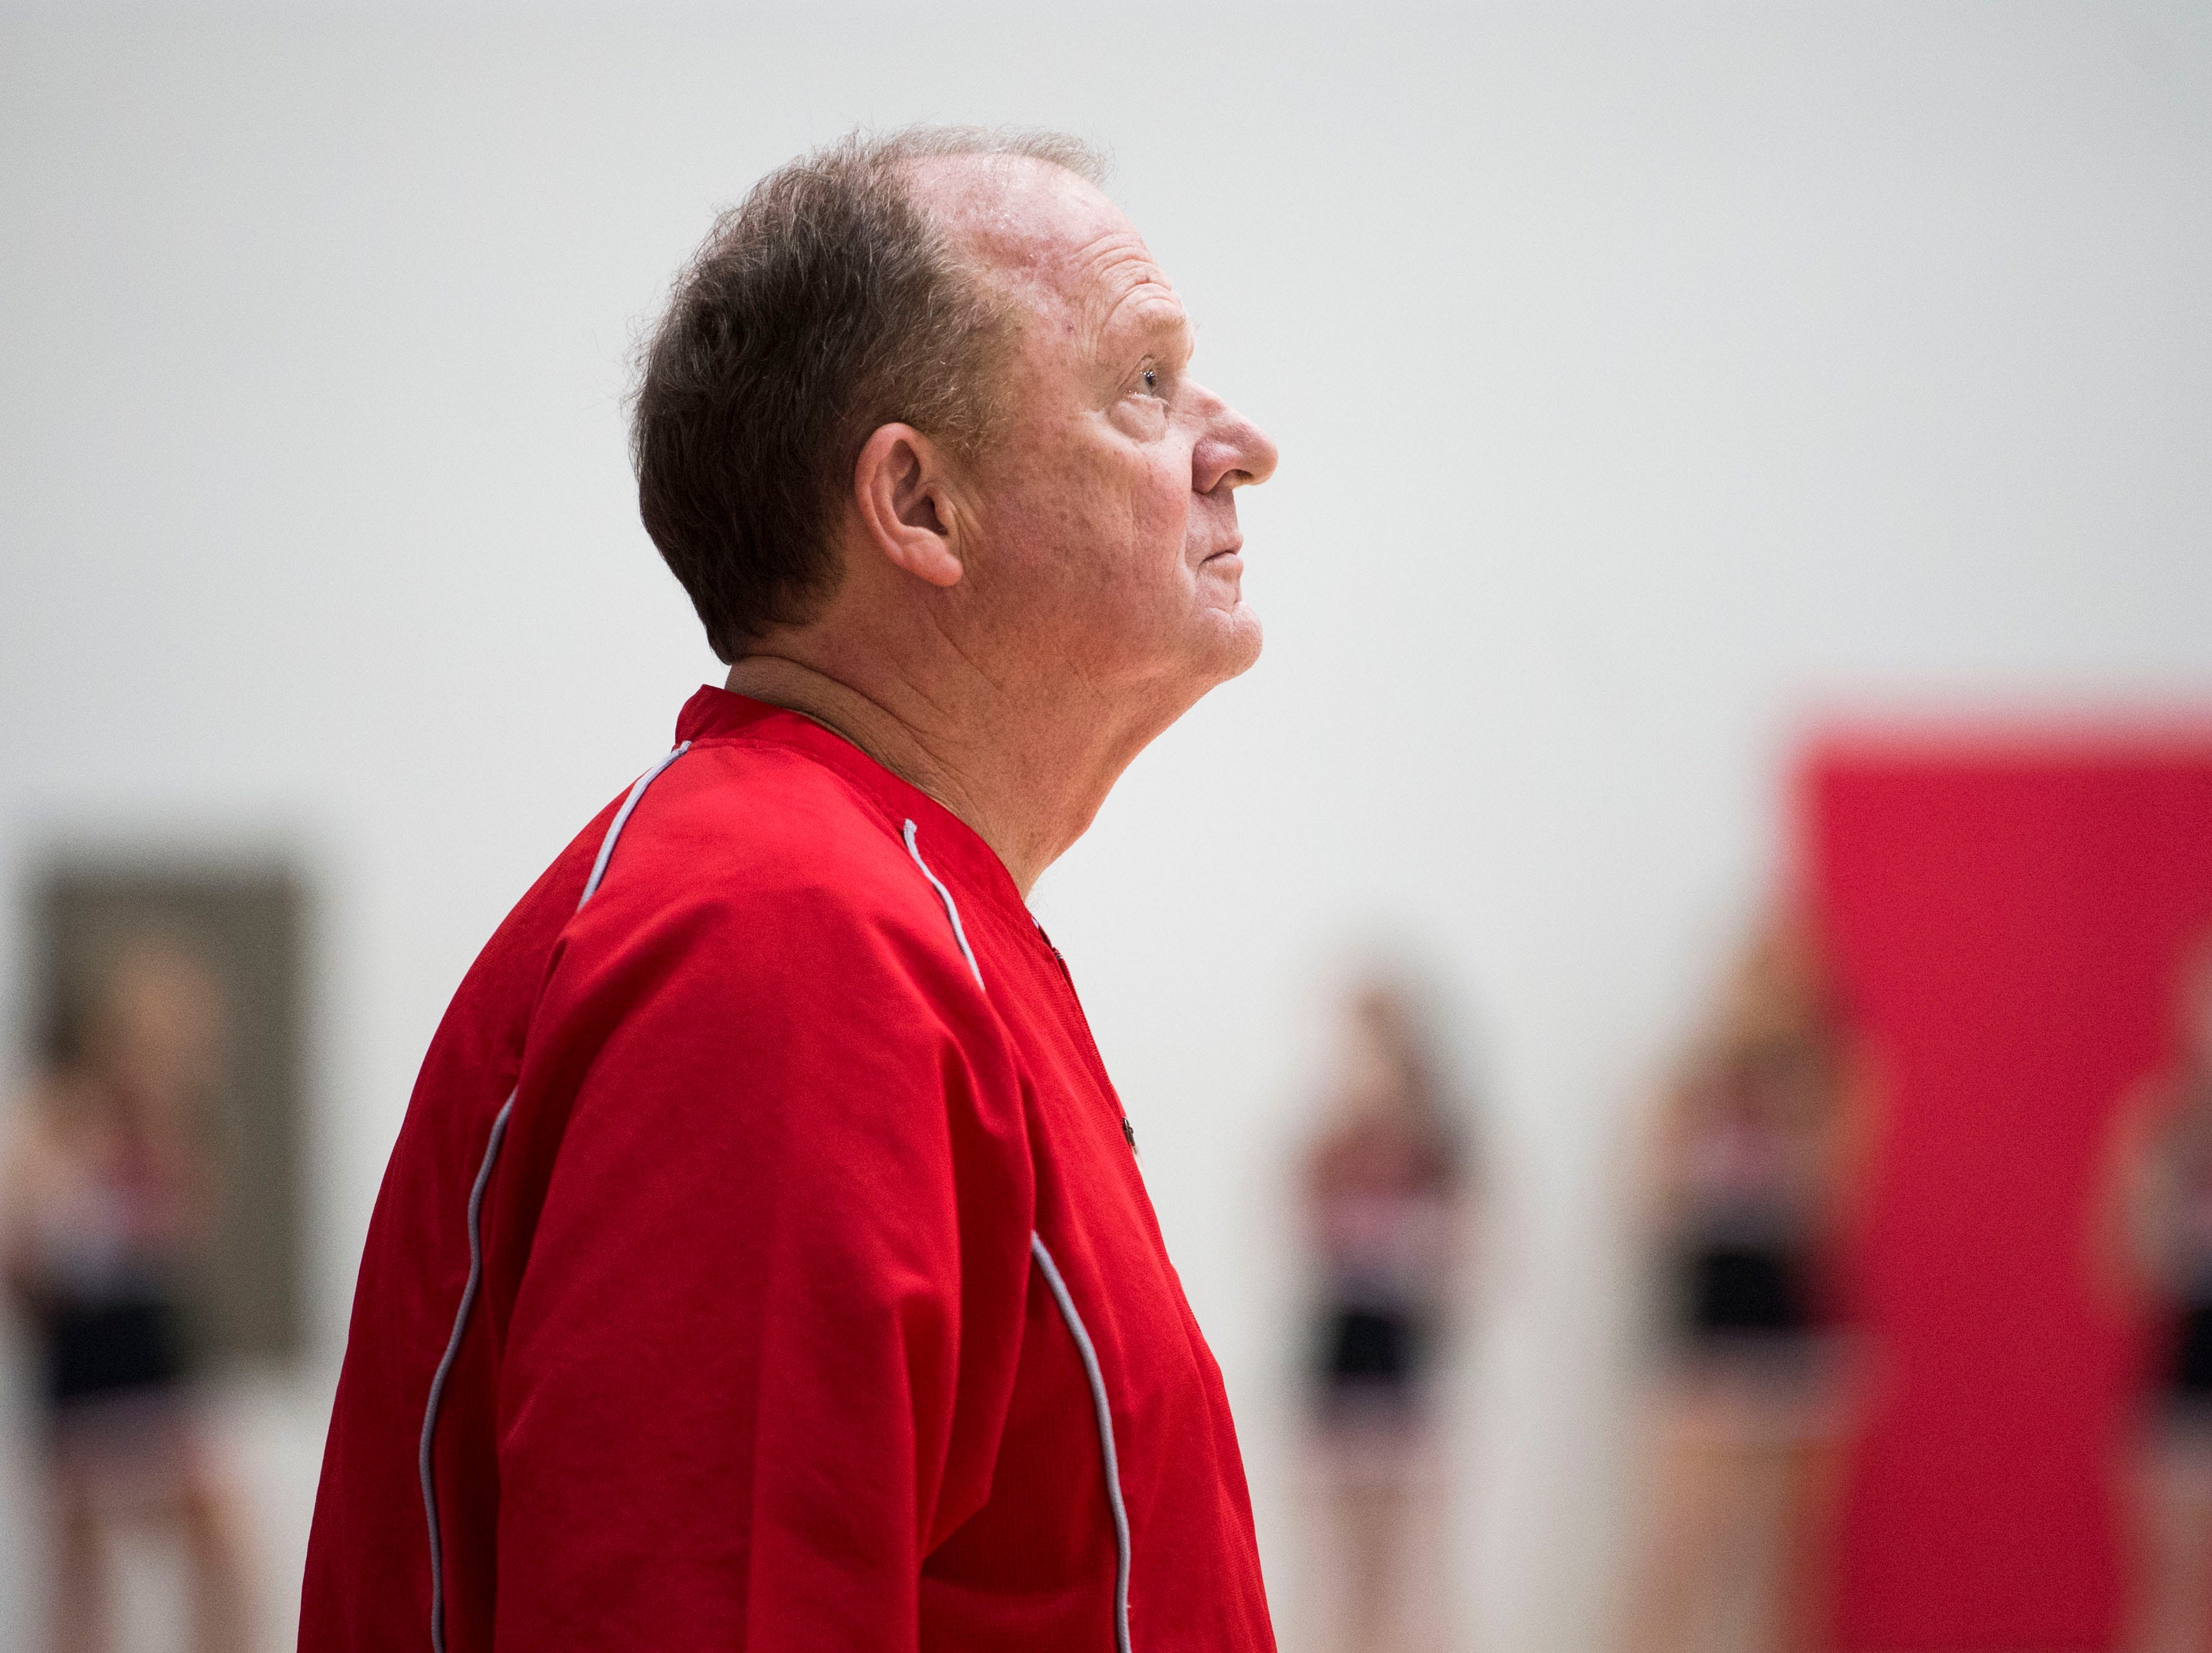 Heritage boys basketball coach Dennis Godfrey looks towards the court ===during a high school basketball game between Maryville and Heritage at Heritage Friday, Jan. 4, 2019. Both Maryville boys and girls teams beat Heritage.